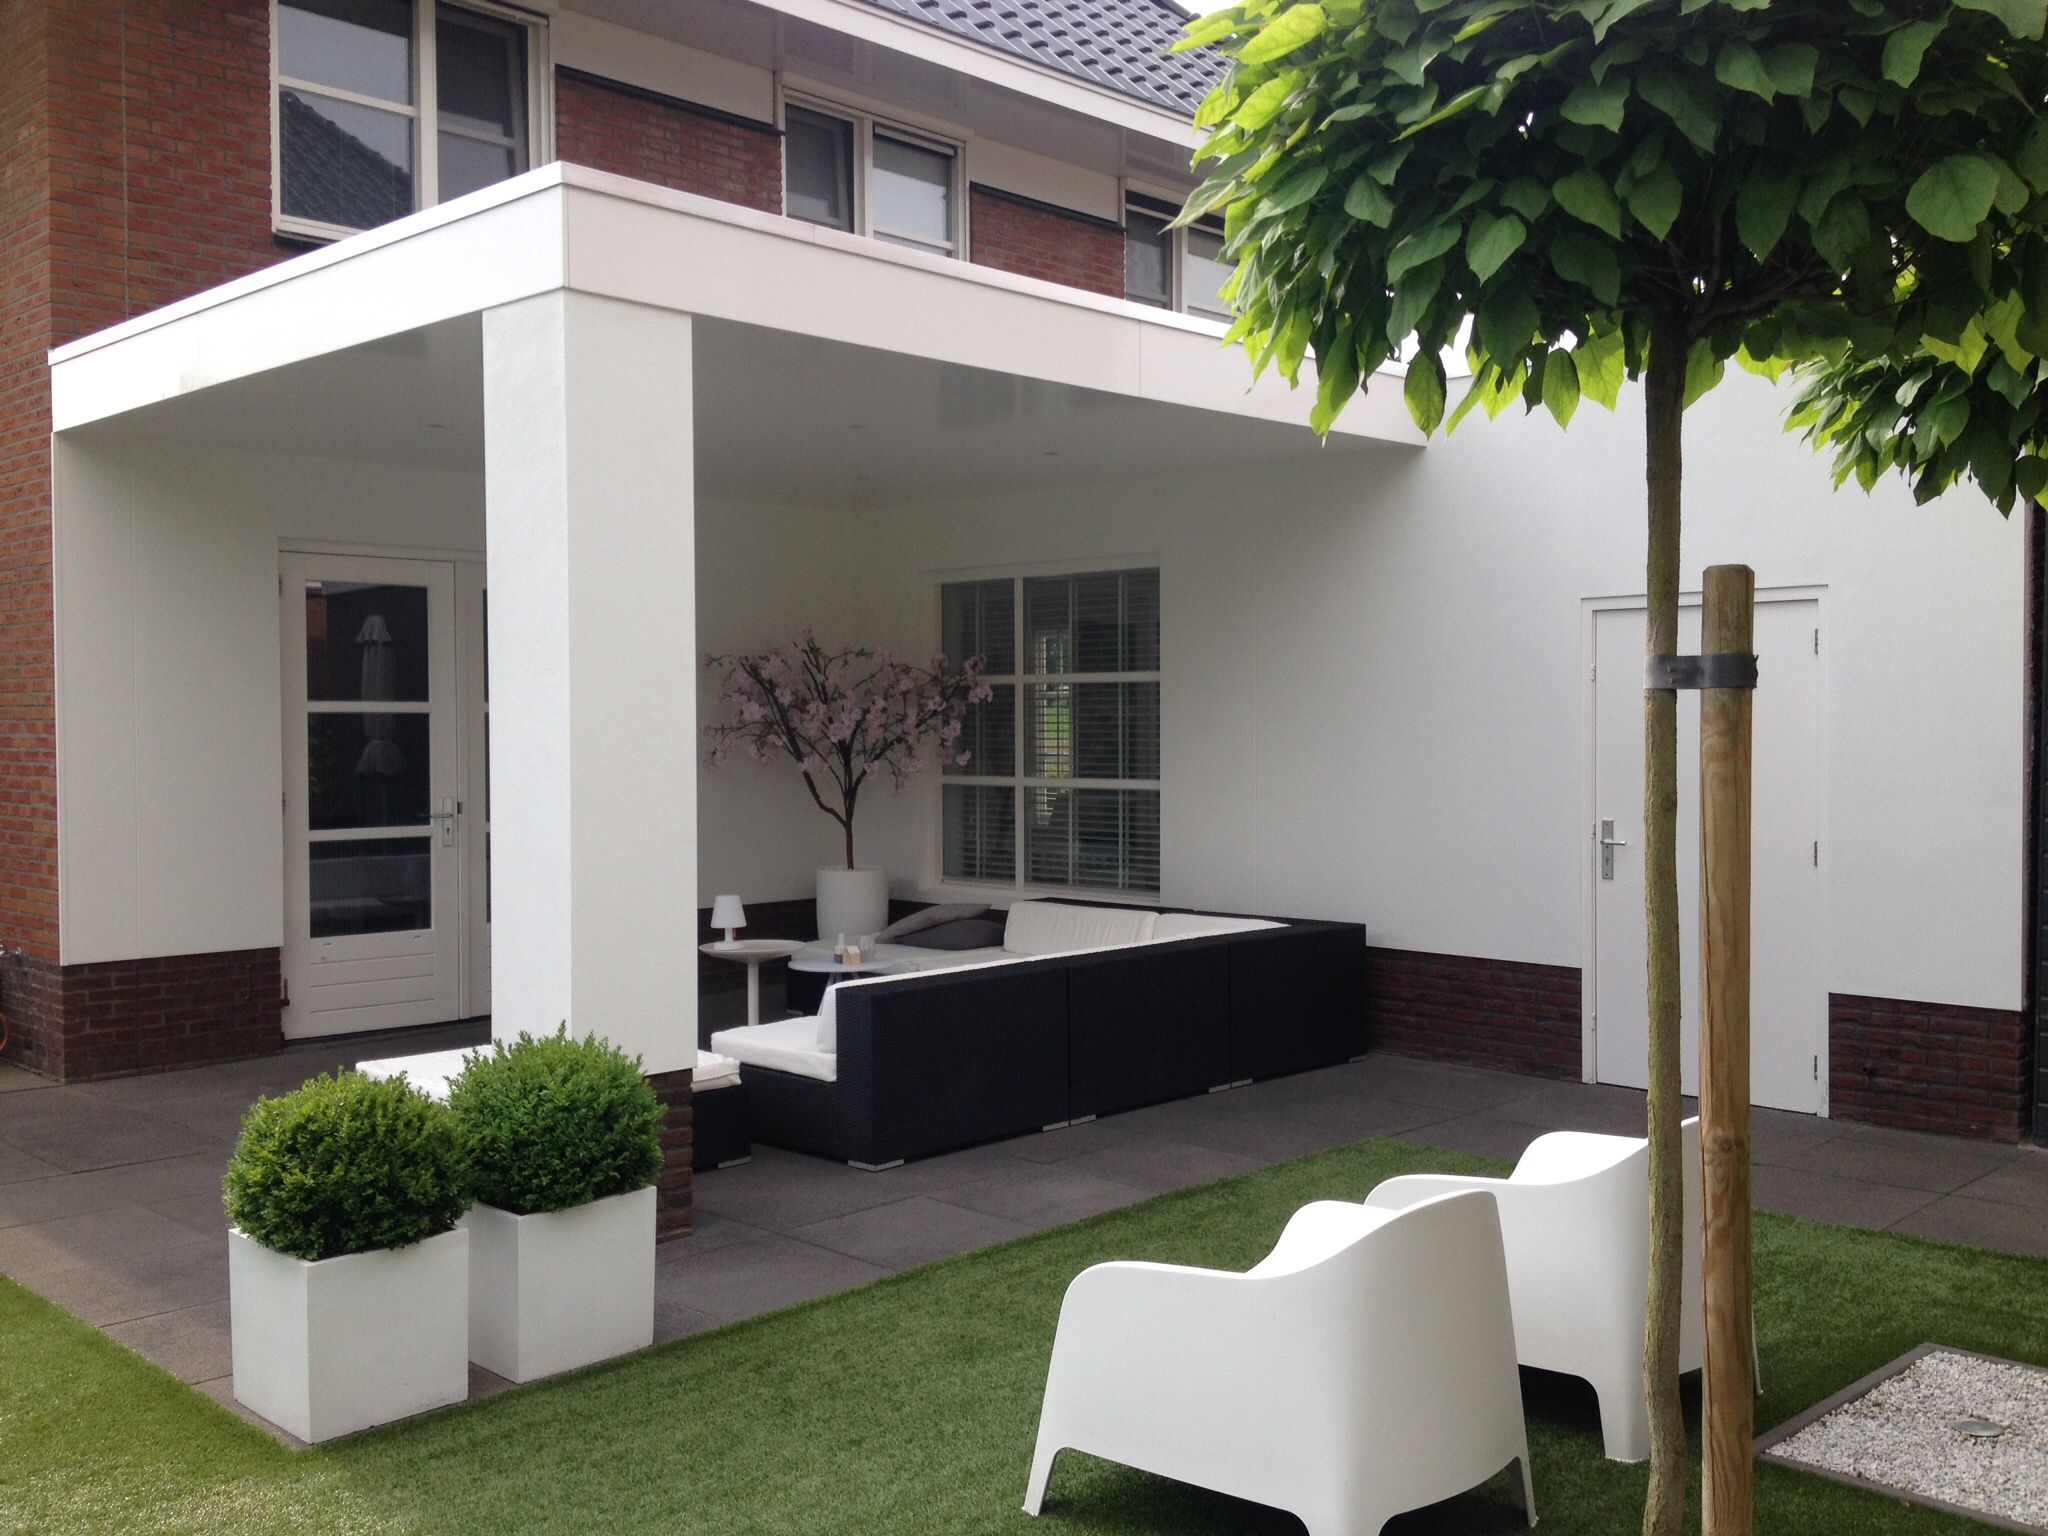 overkapping aan huis tuin pinterest terrasse. Black Bedroom Furniture Sets. Home Design Ideas